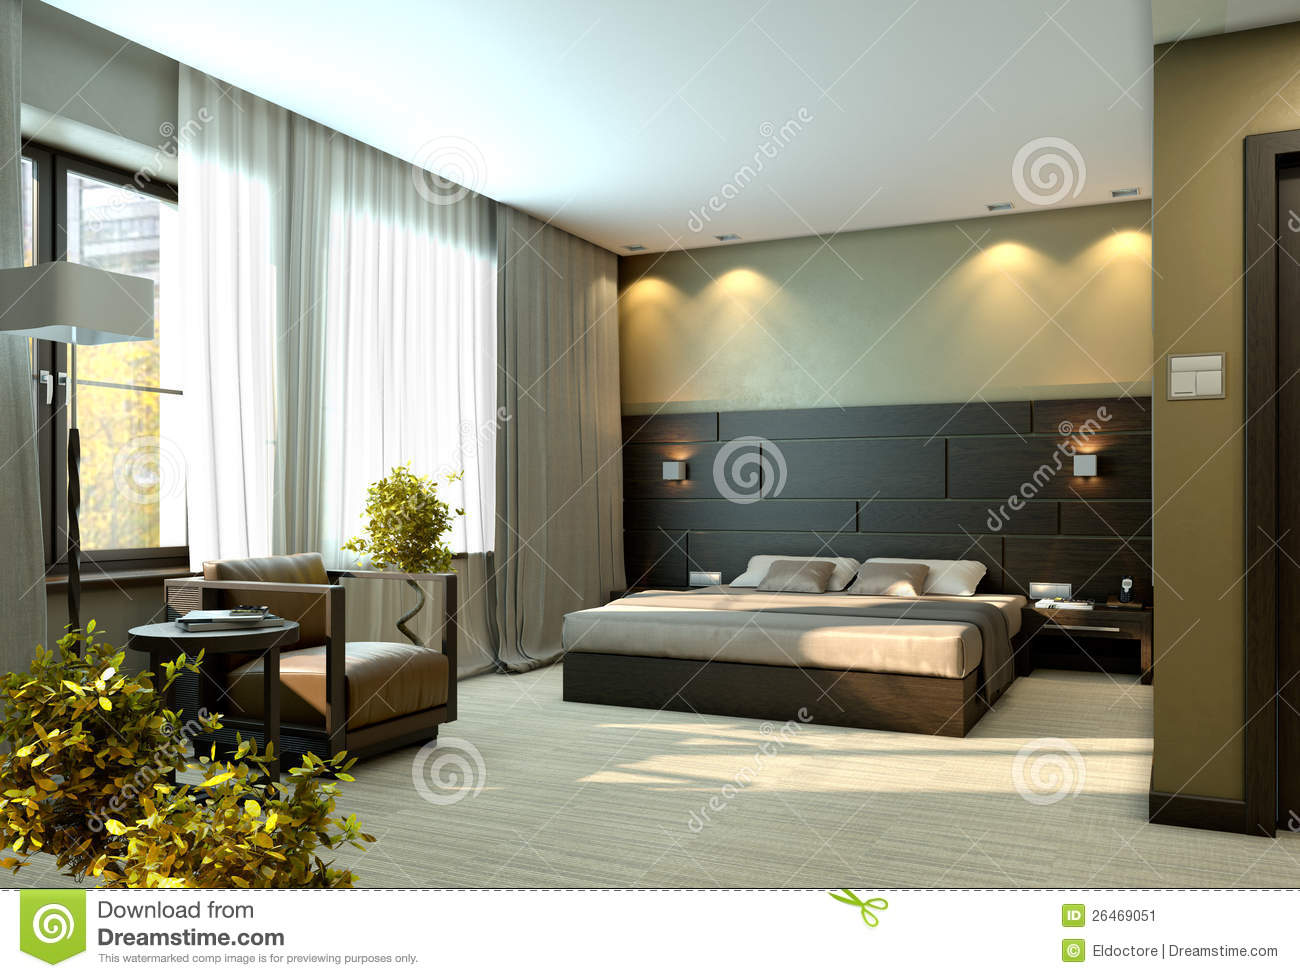 https://thumbs.dreamstime.com/z/camera-da-letto-beige-di-lusso-moderna-26469051.jpg